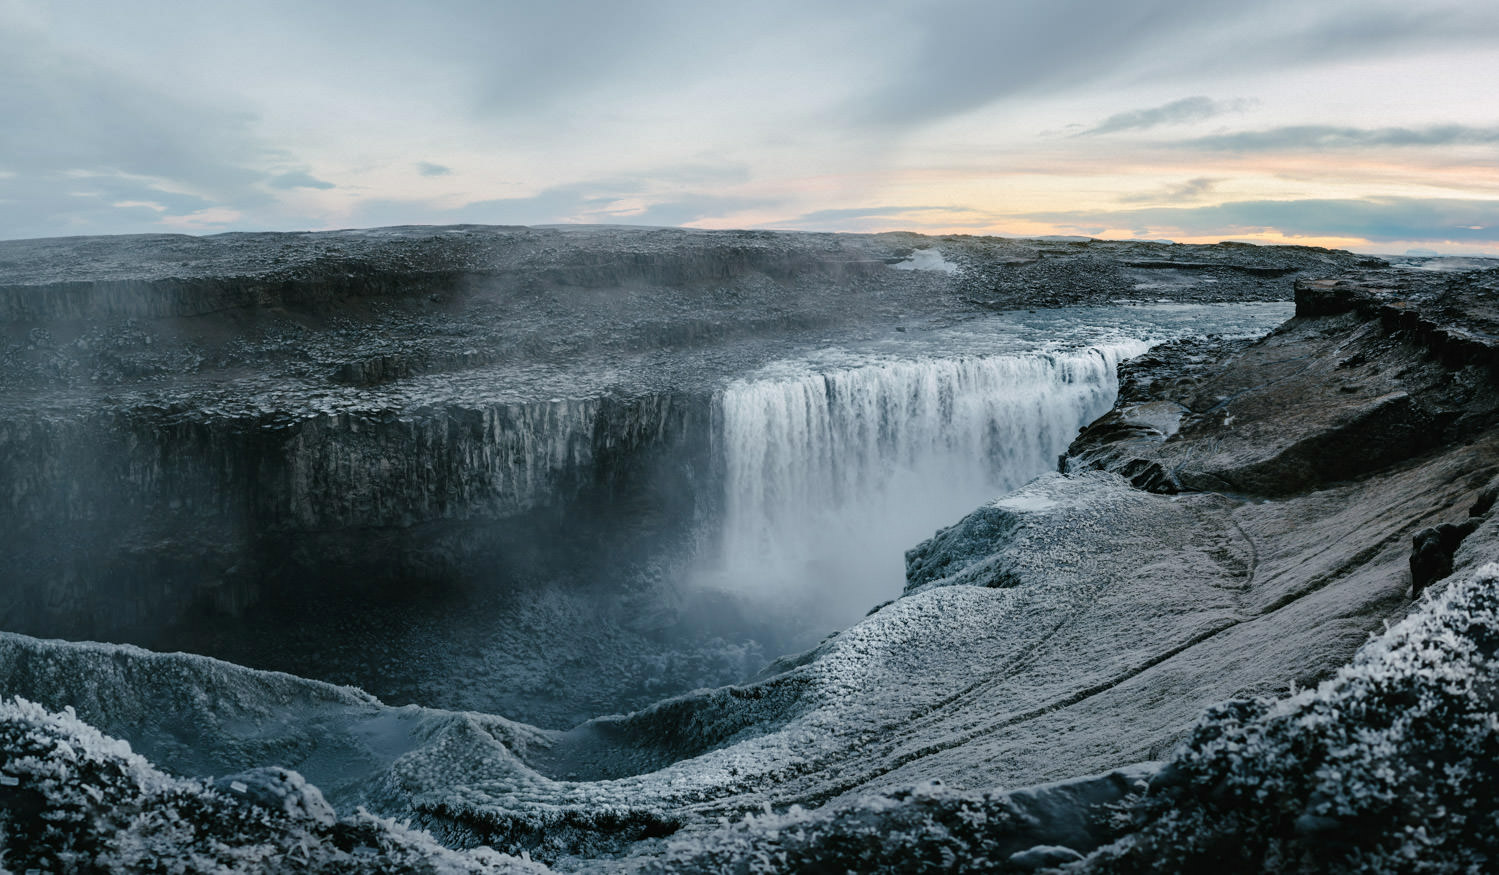 Dettifoss waterfall in Iceland - Location for Prometheus movie.